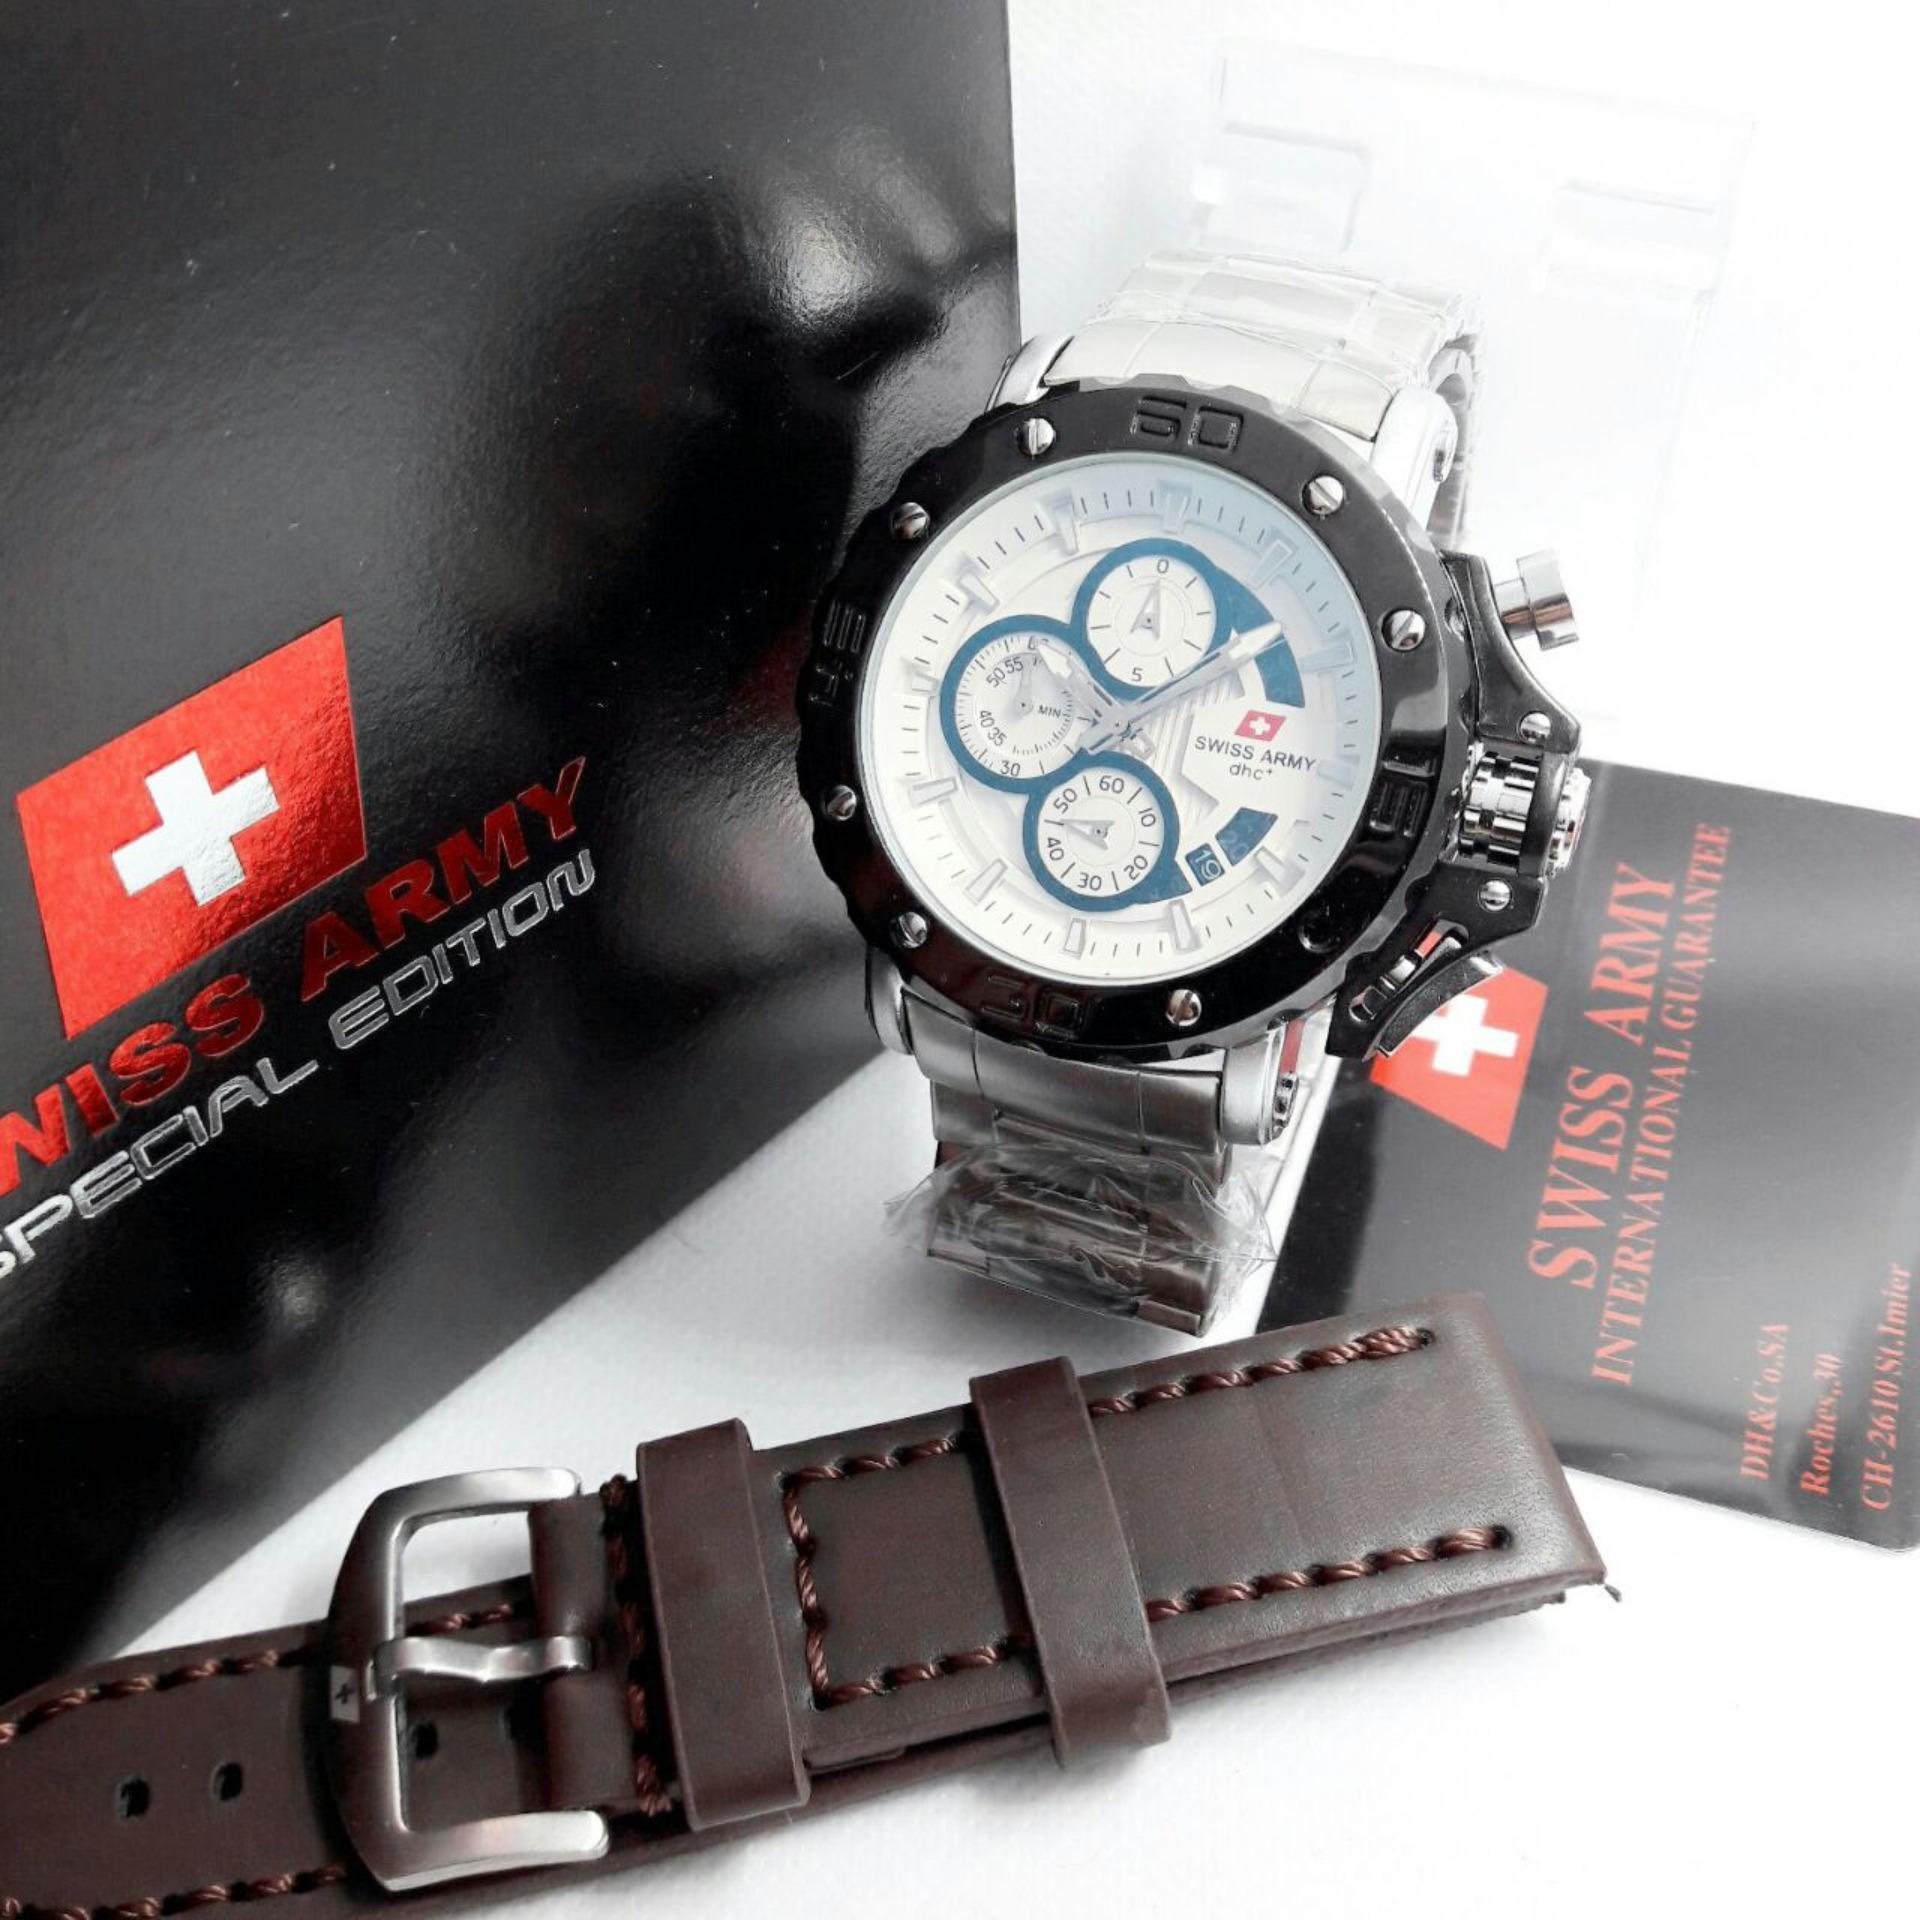 Jam Tangan Swiss Army Dhc .SA3079MR Pria Full Black Original/Gransi 1 Thn.